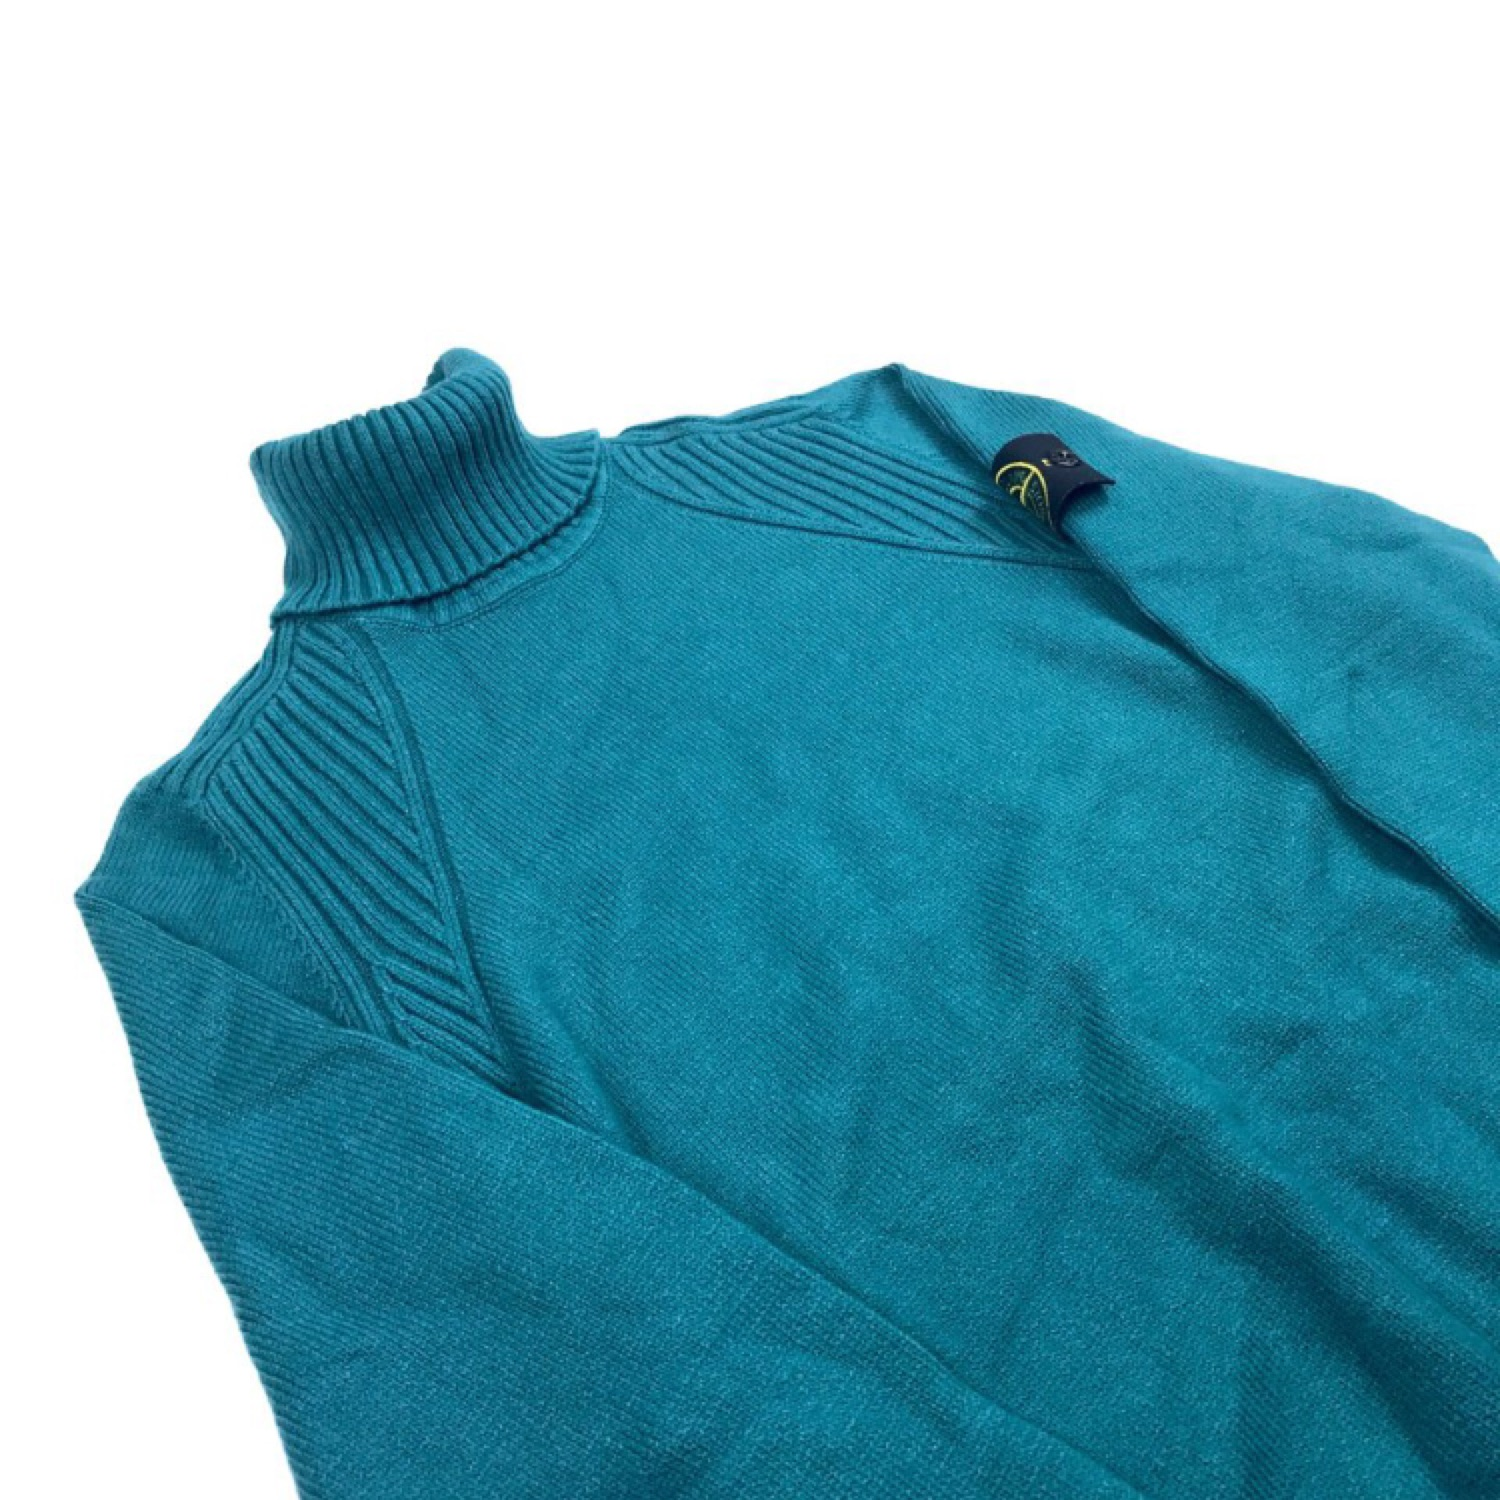 Stone Island AW 2014 Turquoise Roll Neck Jumper